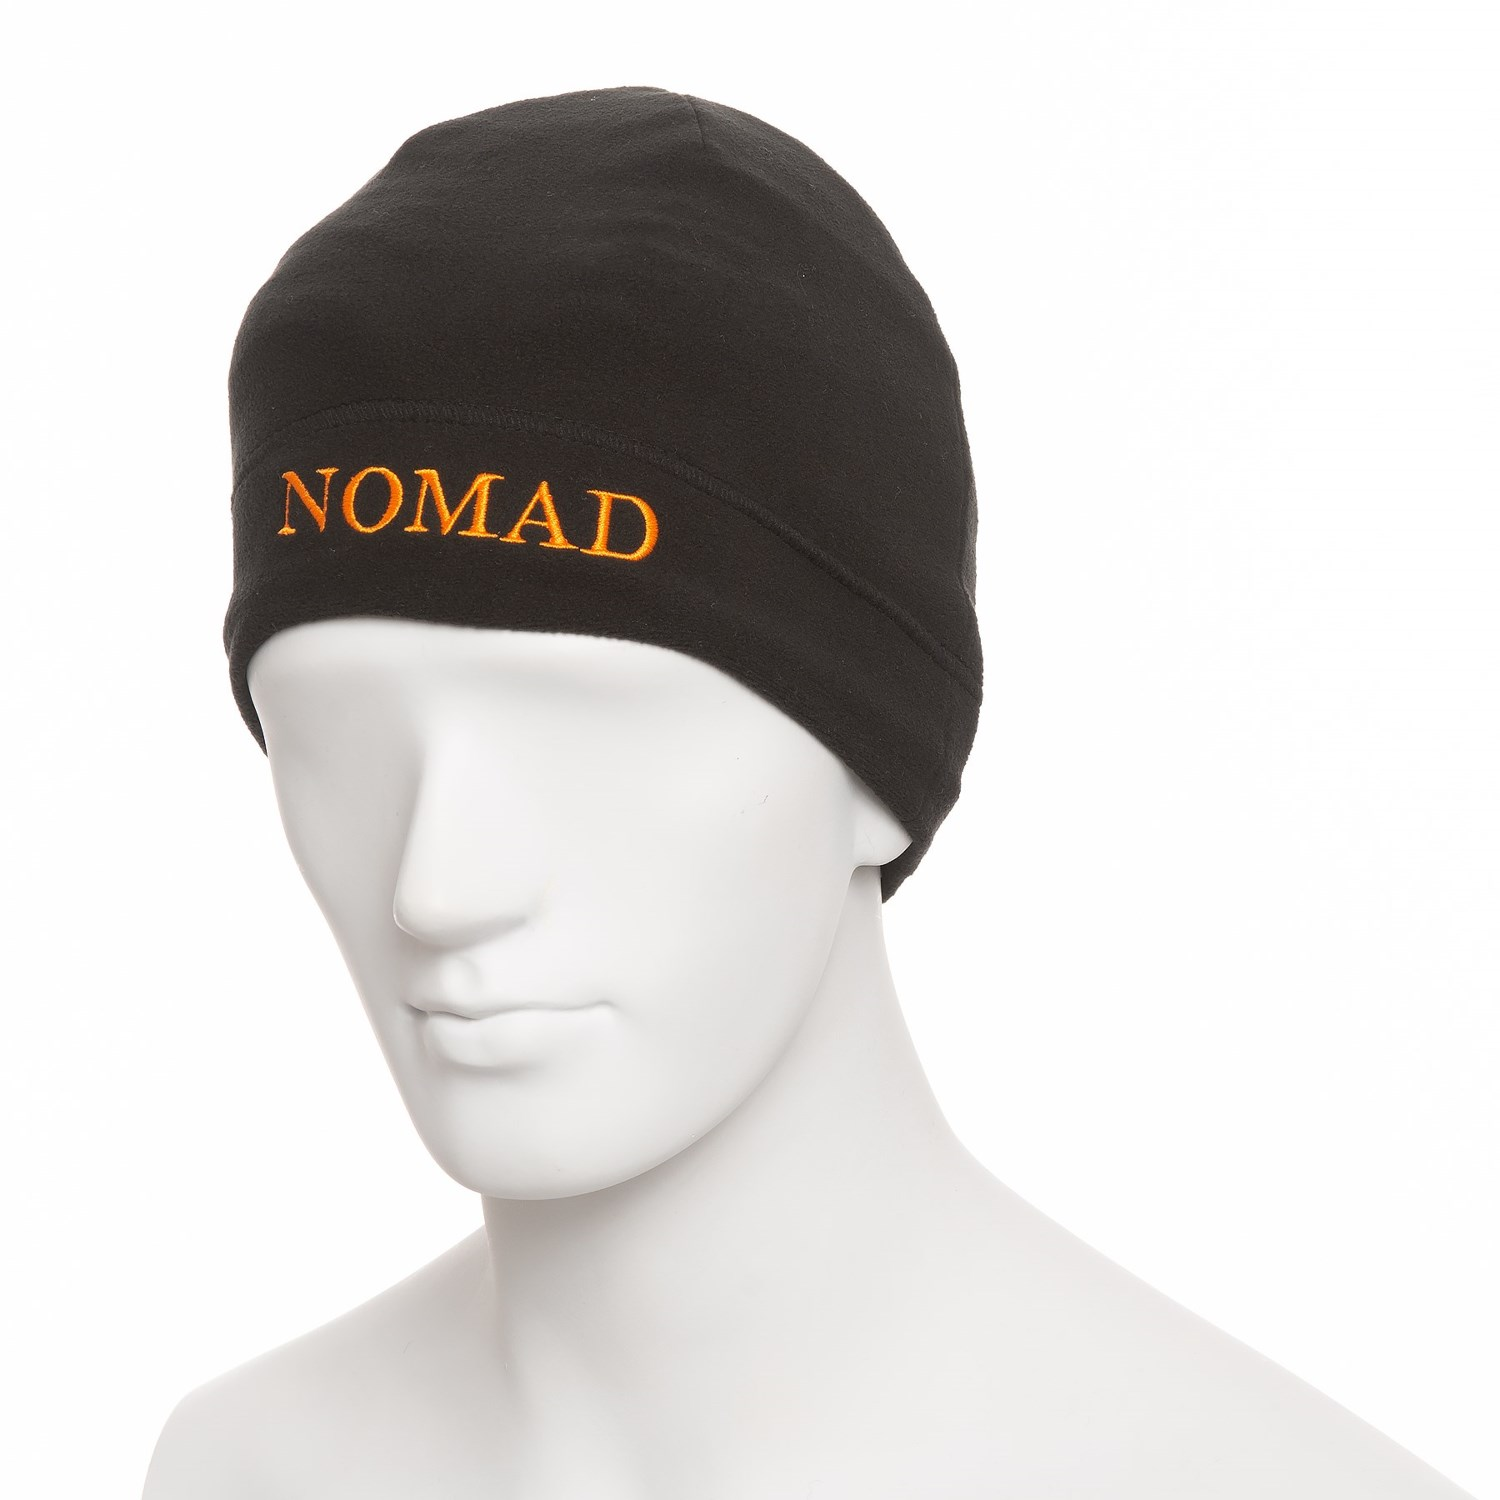 NOMAD Fleece Beanie (For Men) - Save 60% 2a389882220b